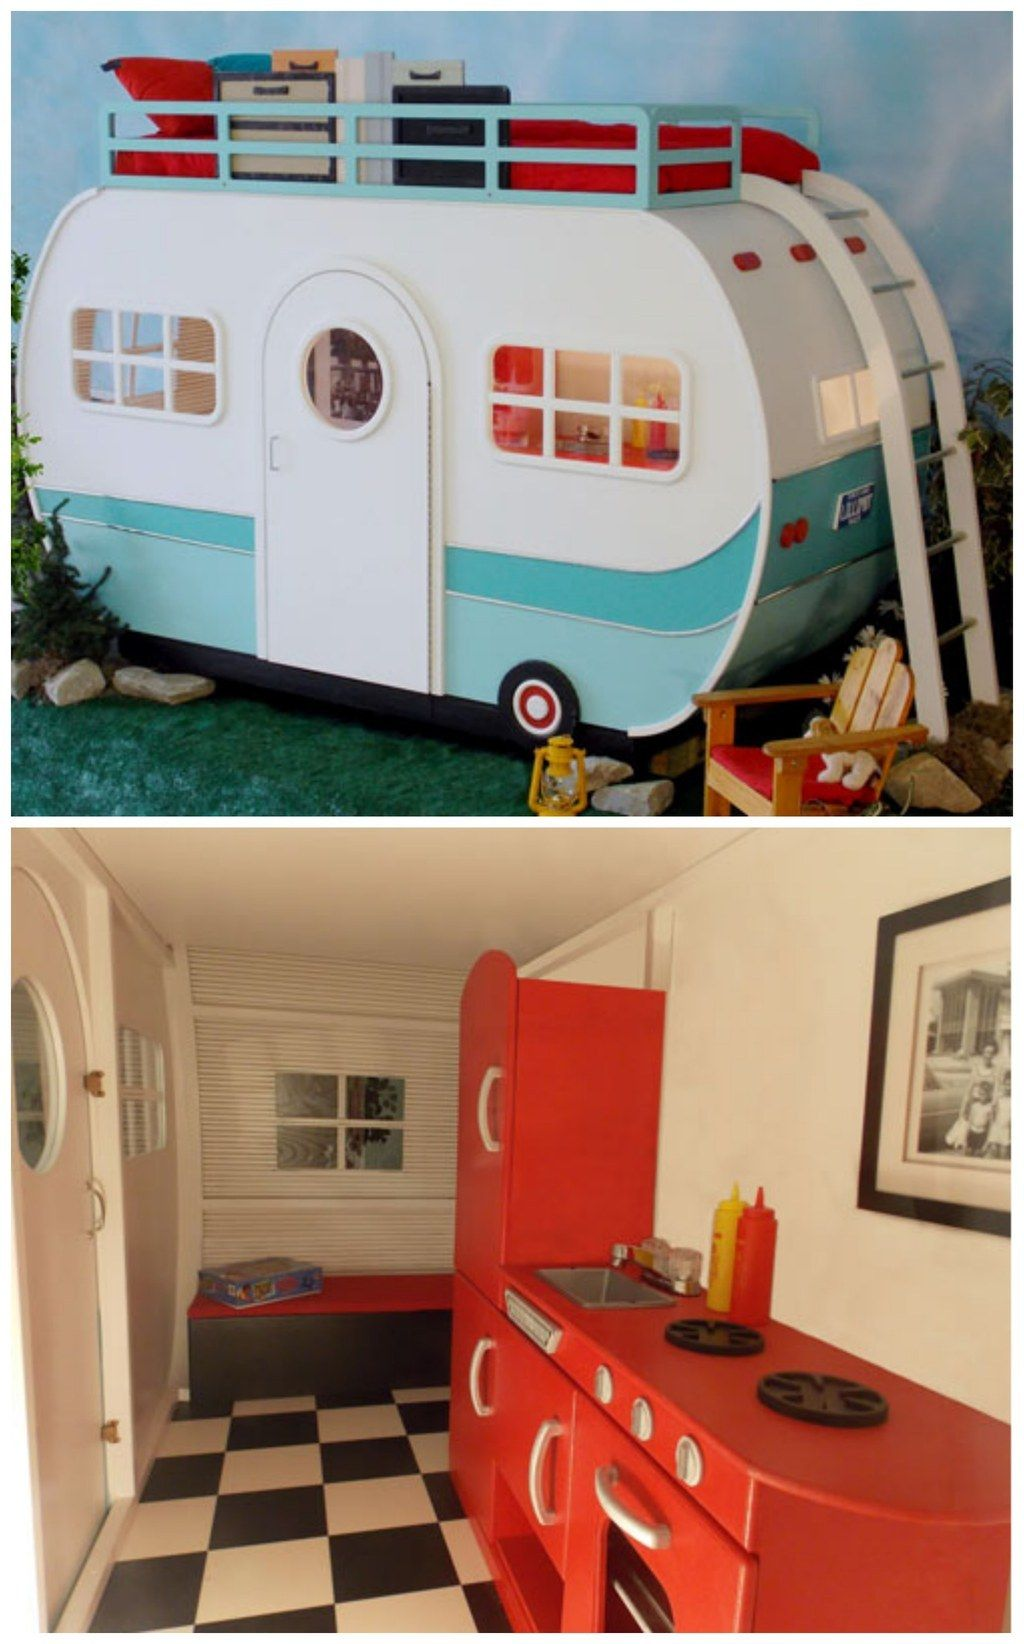 Themed Toddler Beds 23 Beds Your Kids Will Lose Their Minds Over